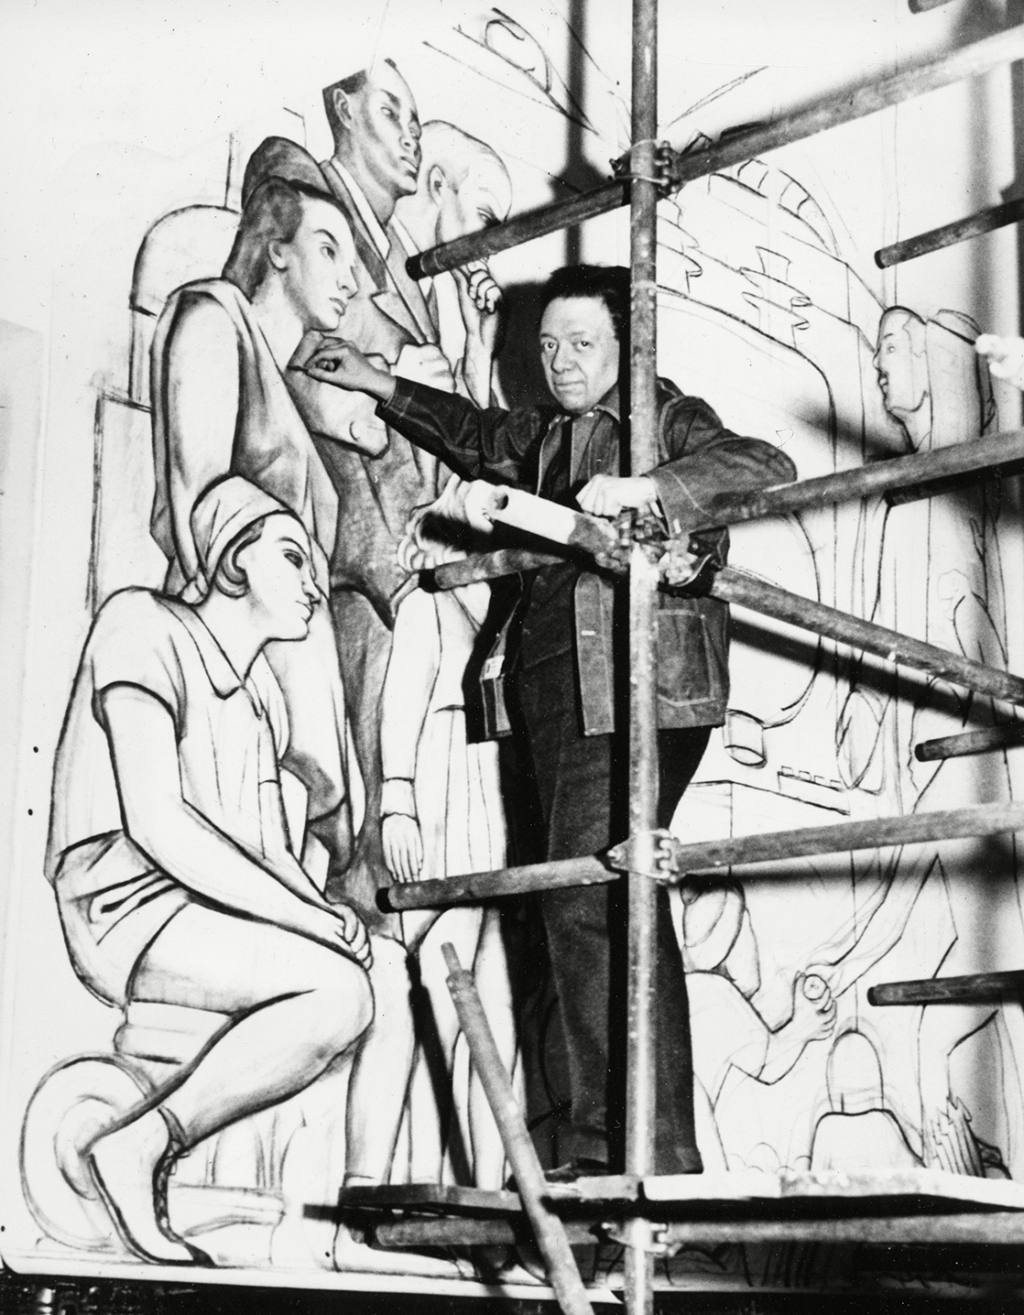 Diego Rivera Is Famed for His Murals, But His Early Paintings Also Made Art History